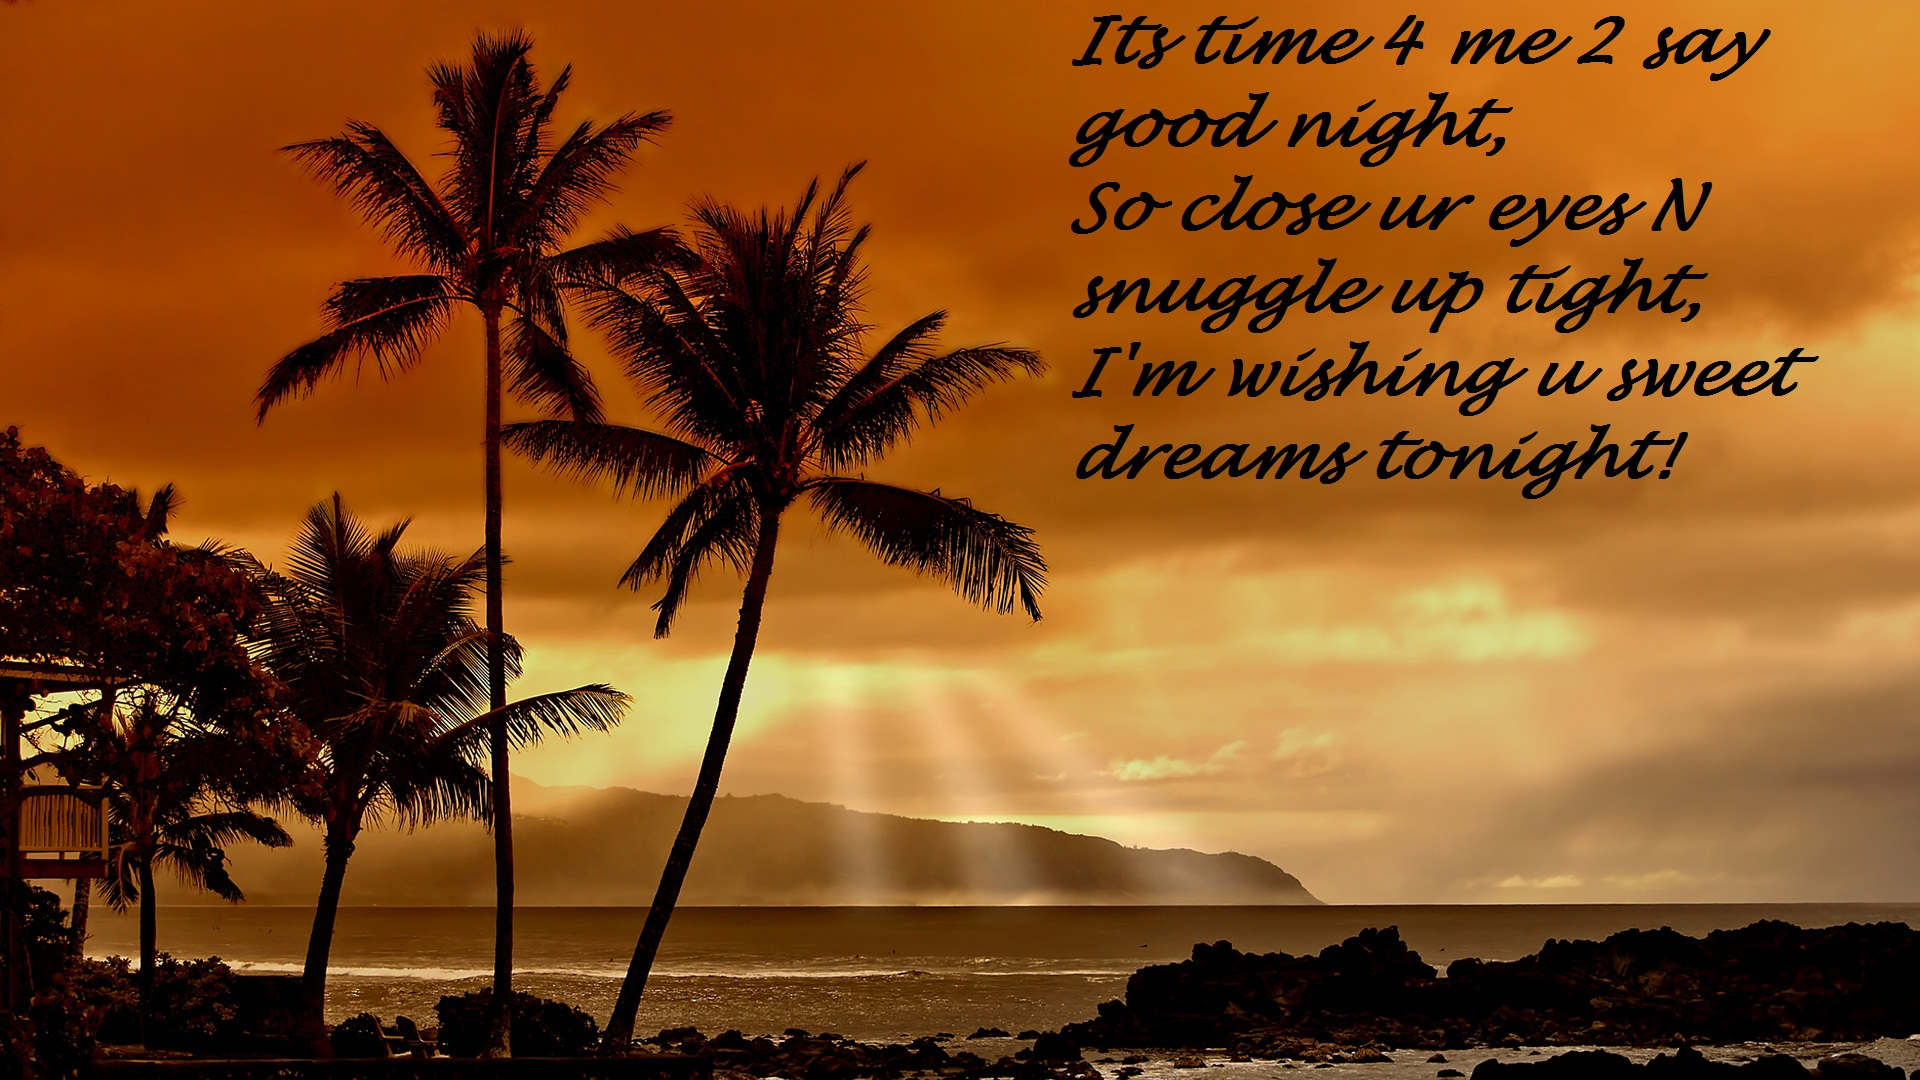 Good Night Love Wallpaper With Quotes : Good Night Quote Wallpapers, Pictures, Images